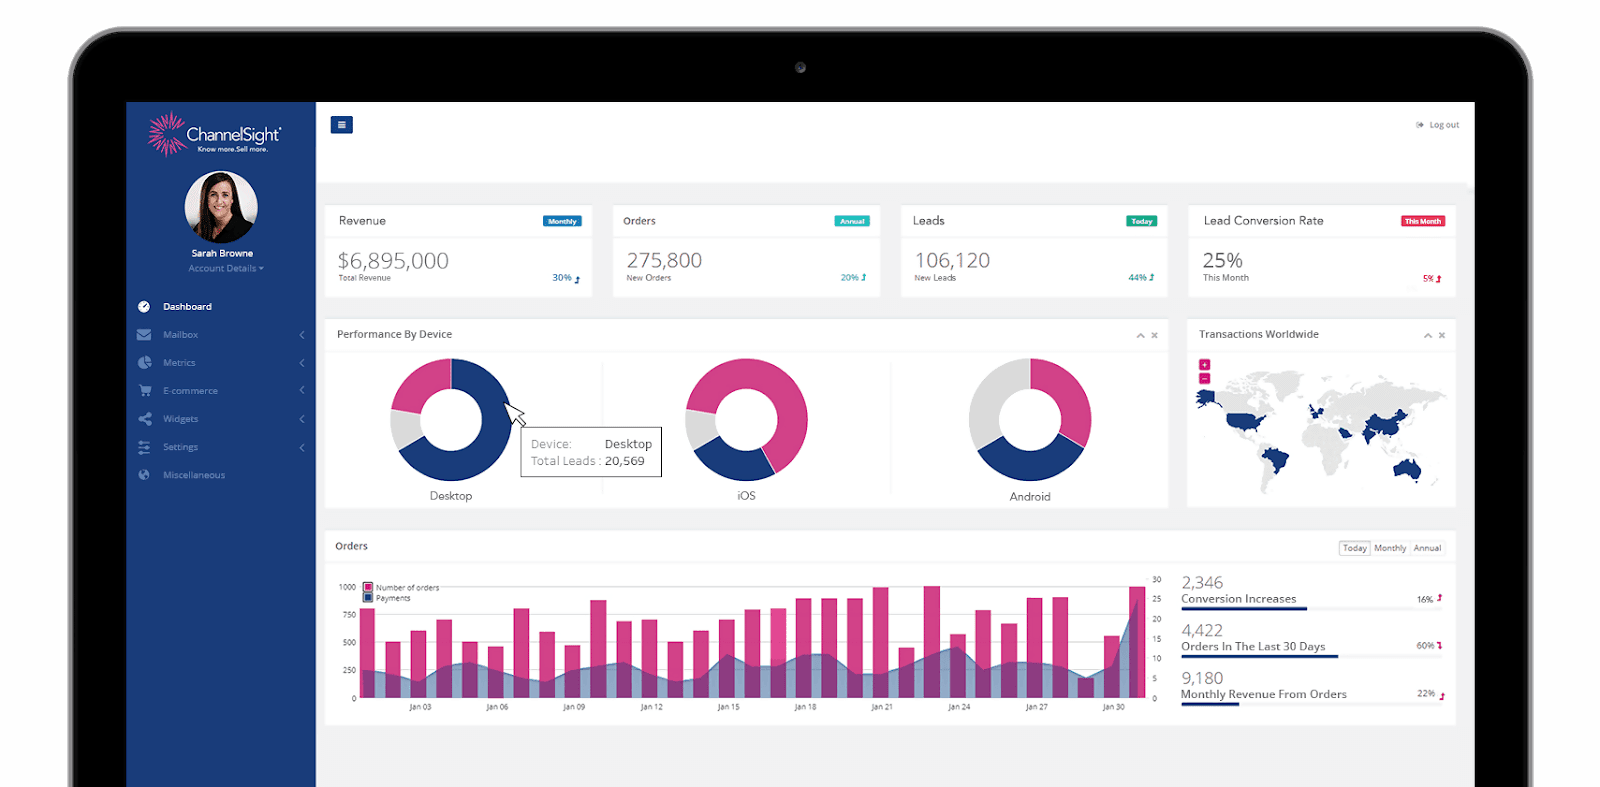 Marketing Performance Dashboard by ChannelSight